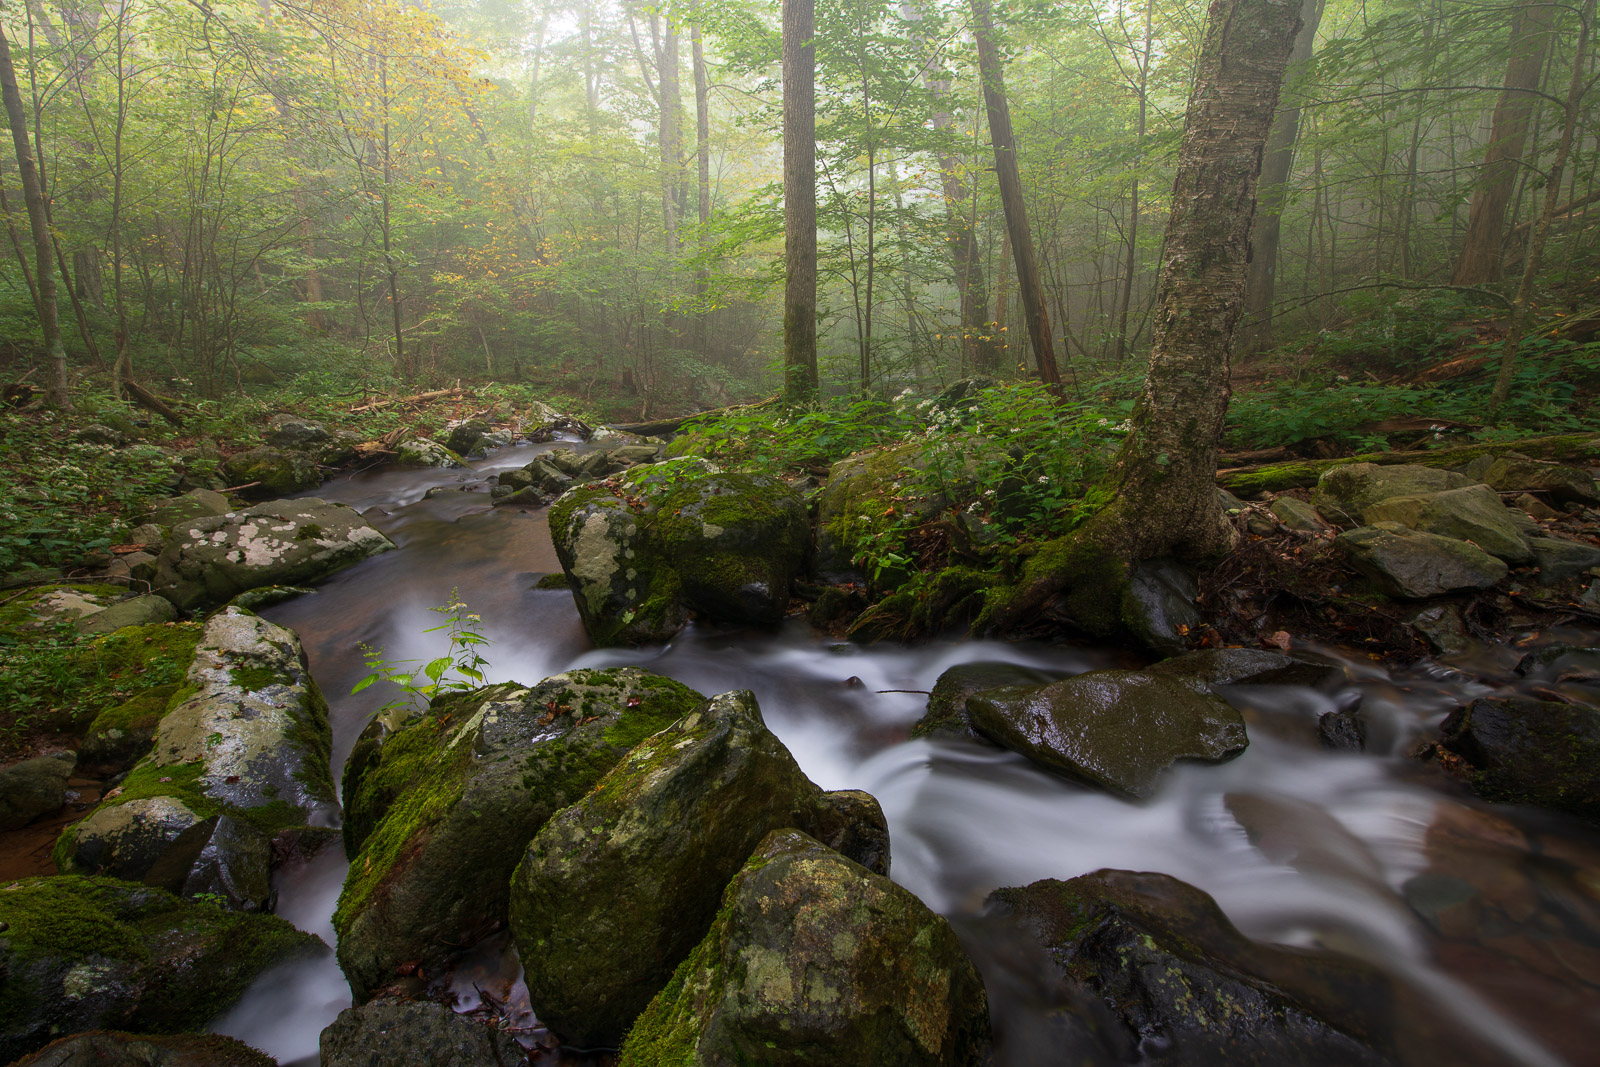 Early autumn and morning fog along the Rose River in the Backcountry of Shenandoah.